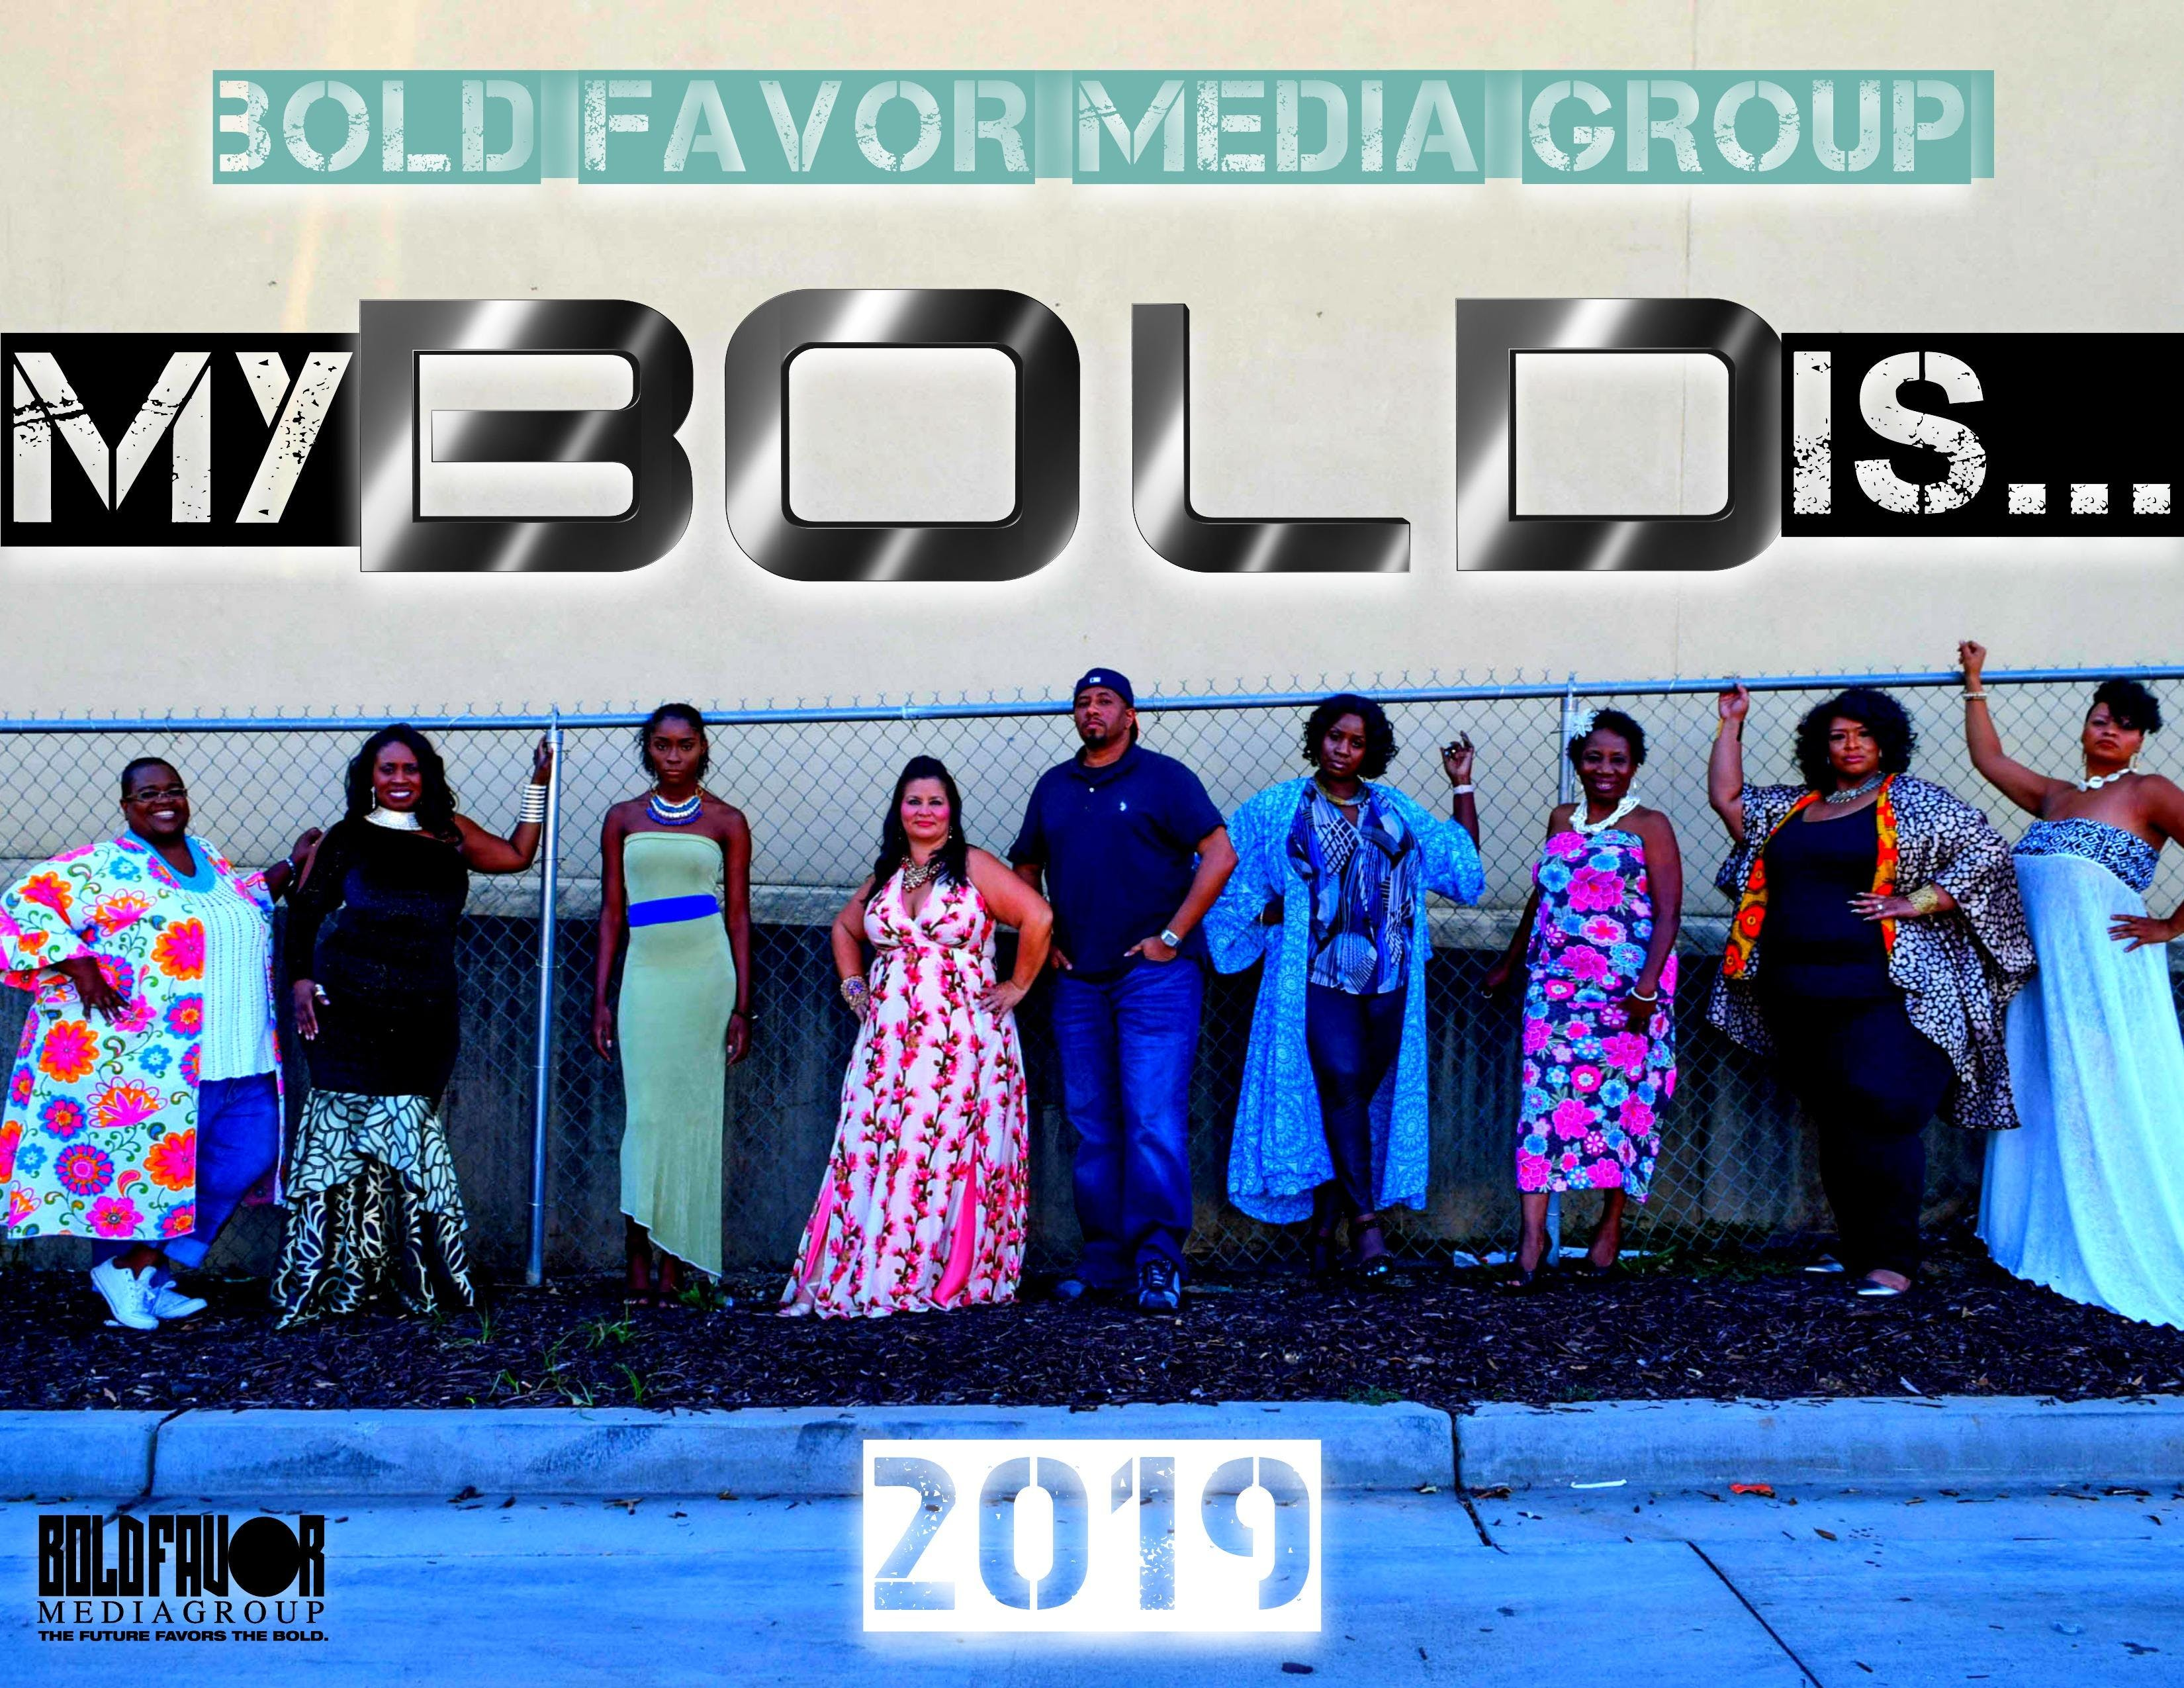 My BOLD Is... 2019 Calendar by BOLD Favor Media Group